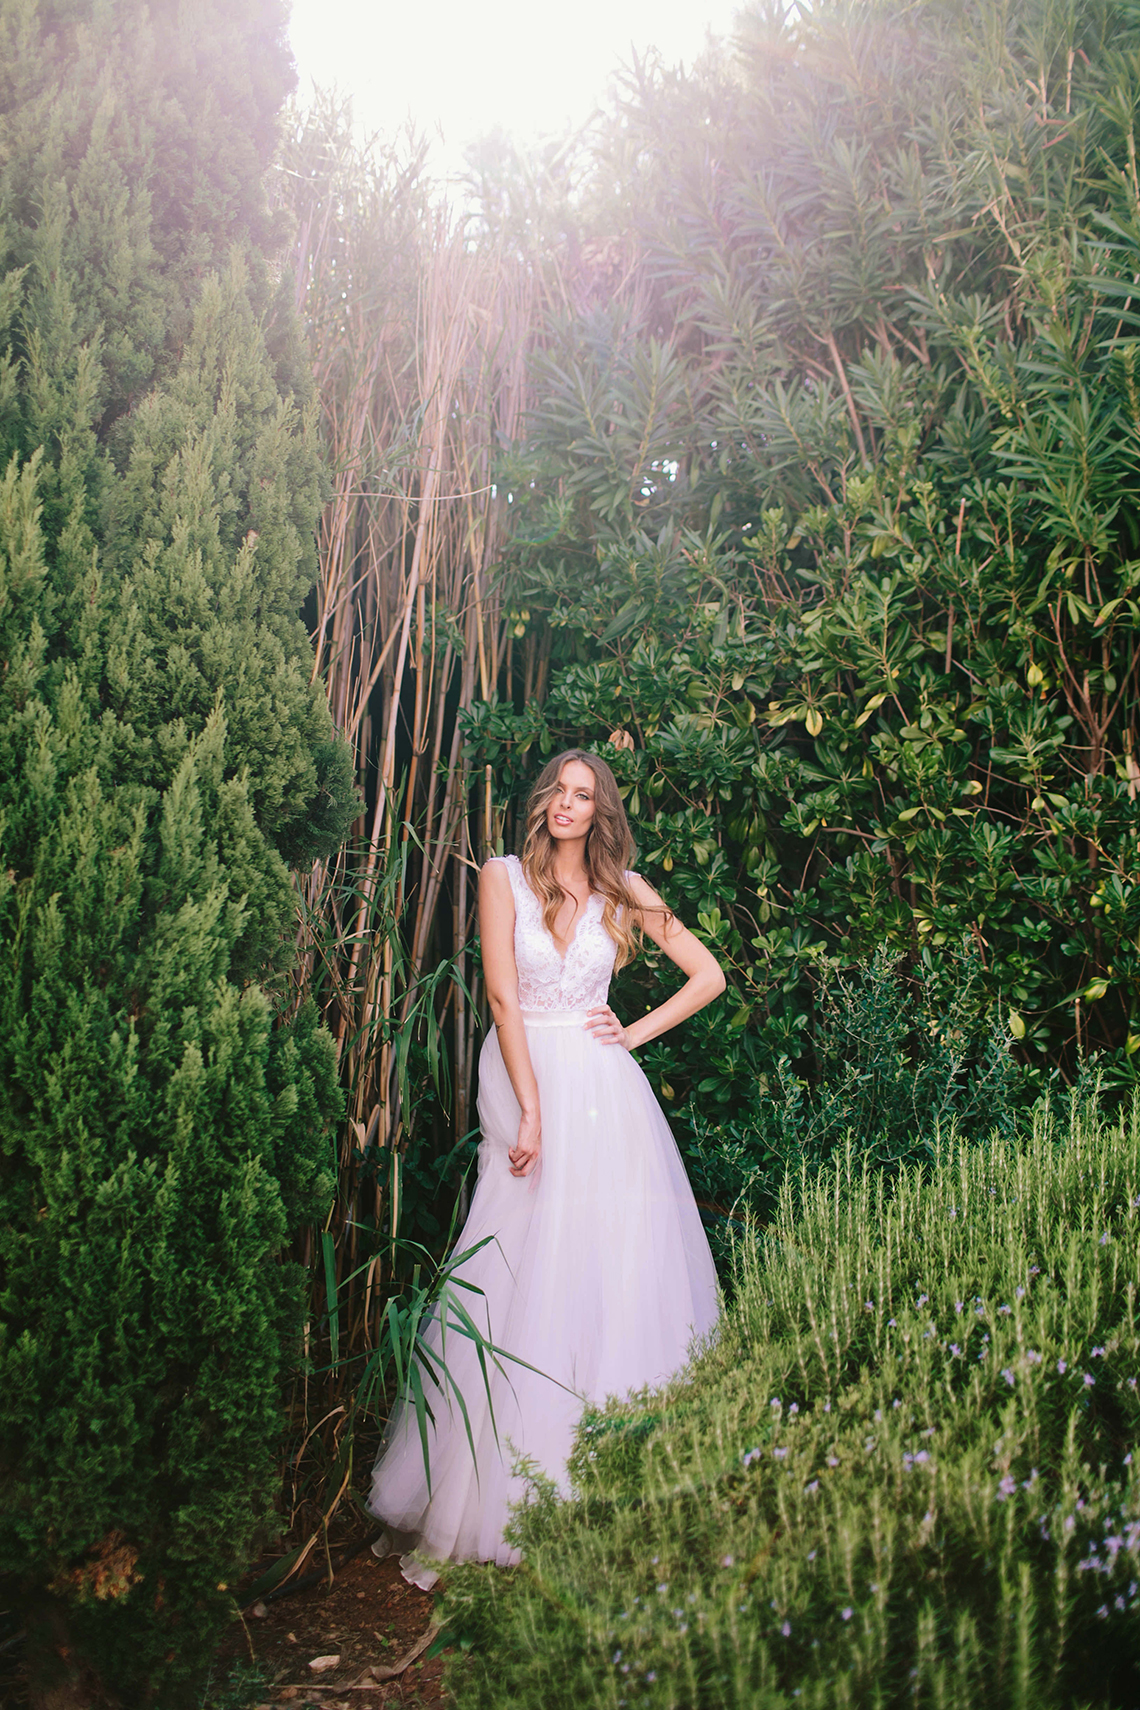 Wedding Inspiration from Greece by George Pahountis 32